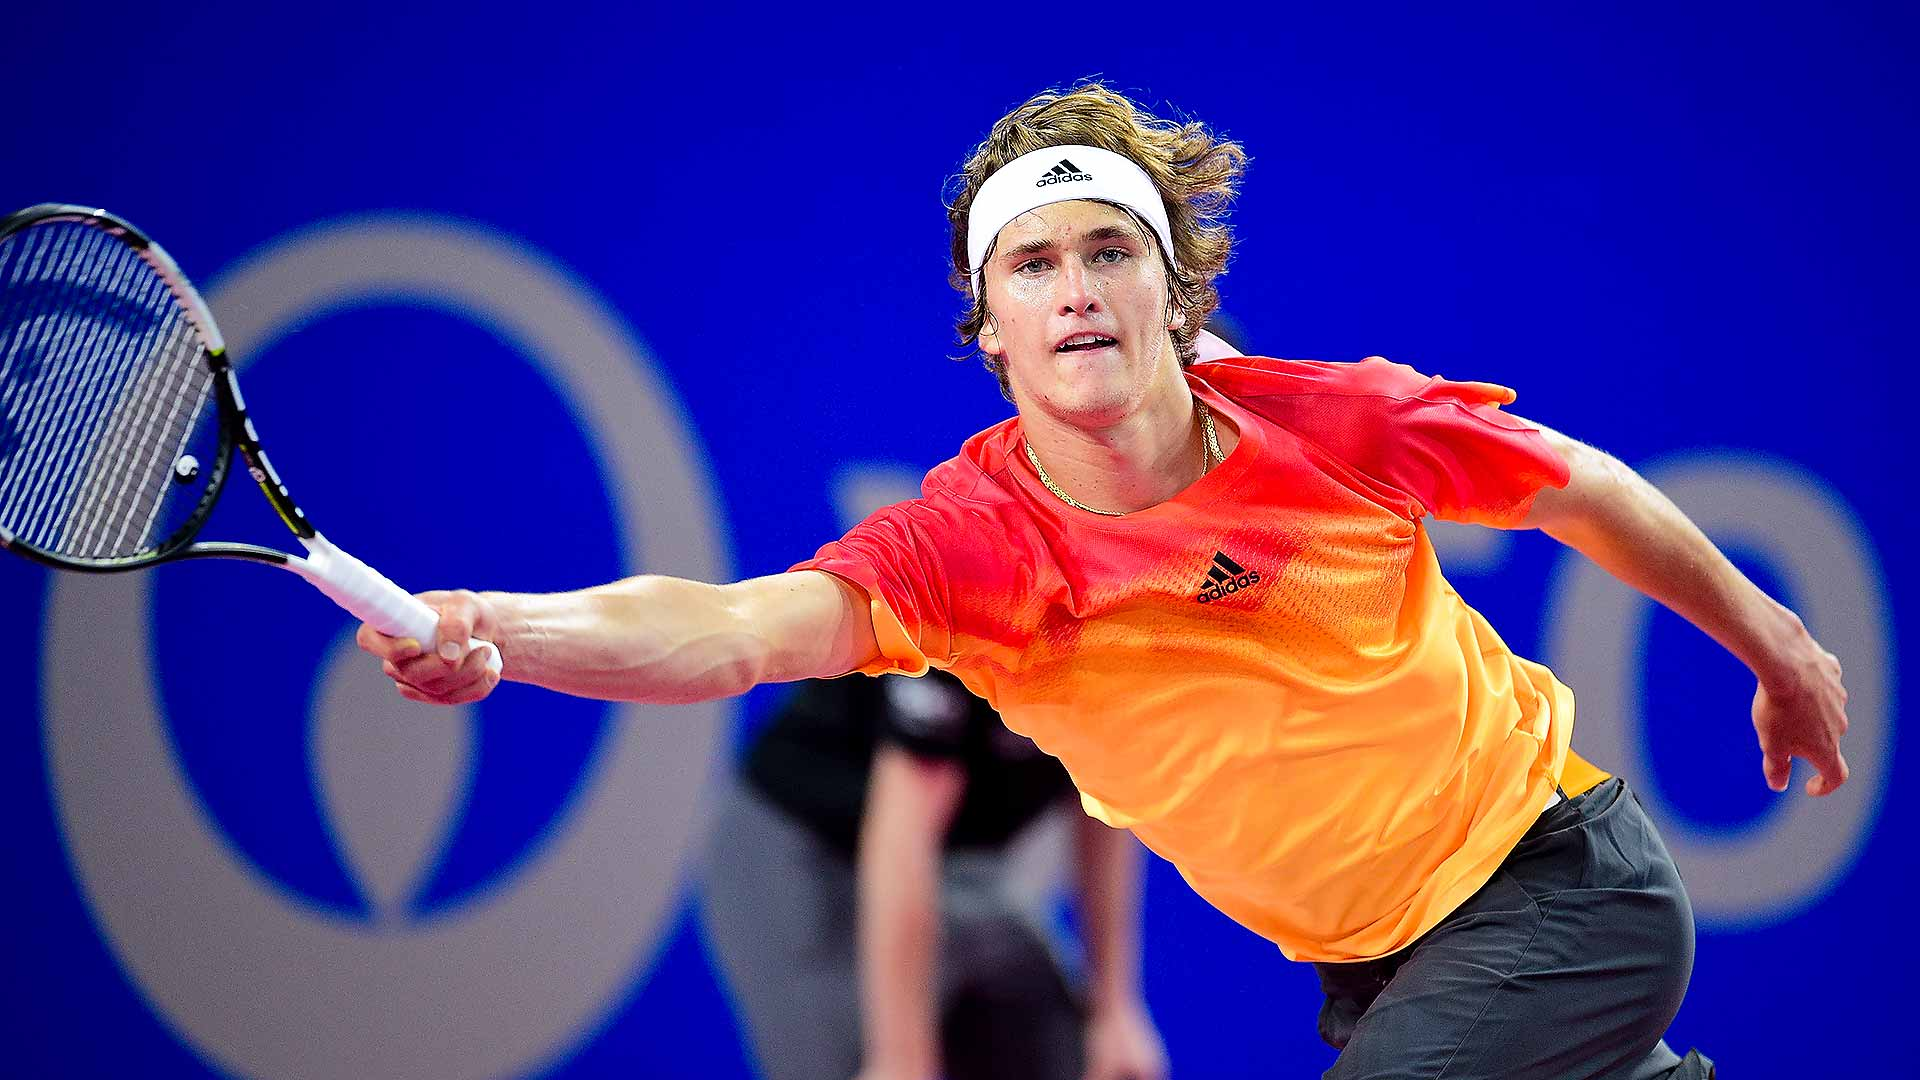 Zverev stretches for a forehand